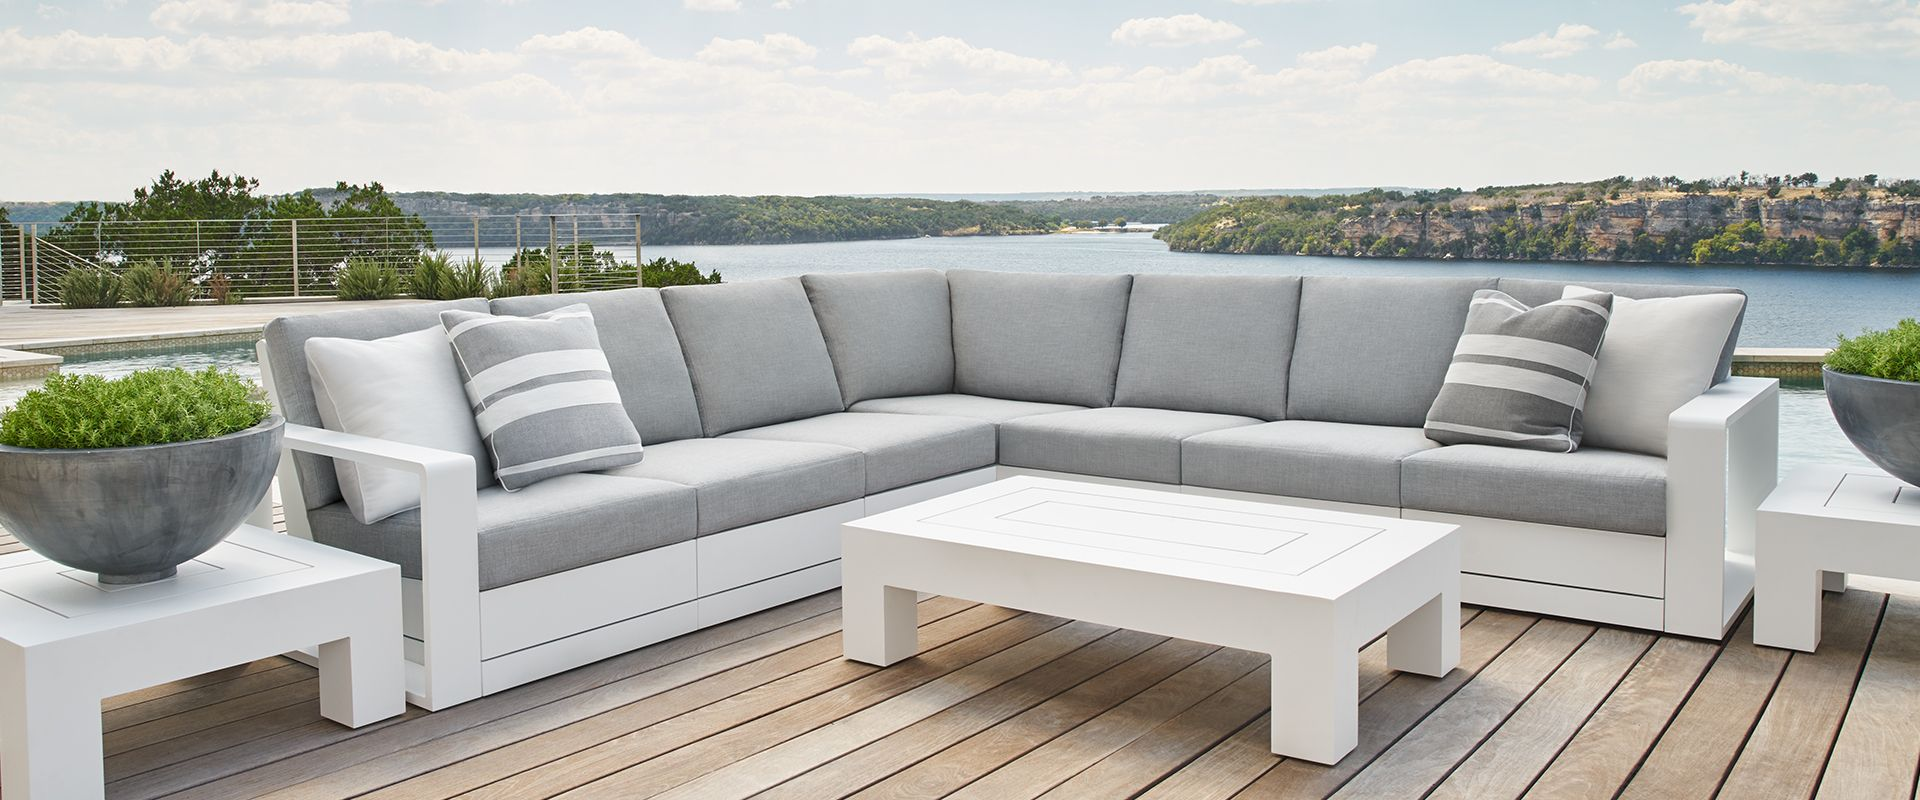 Sutherland Furniture | Luxury outdoor furniture and indoor ... on Fine Living Patio Set id=33373